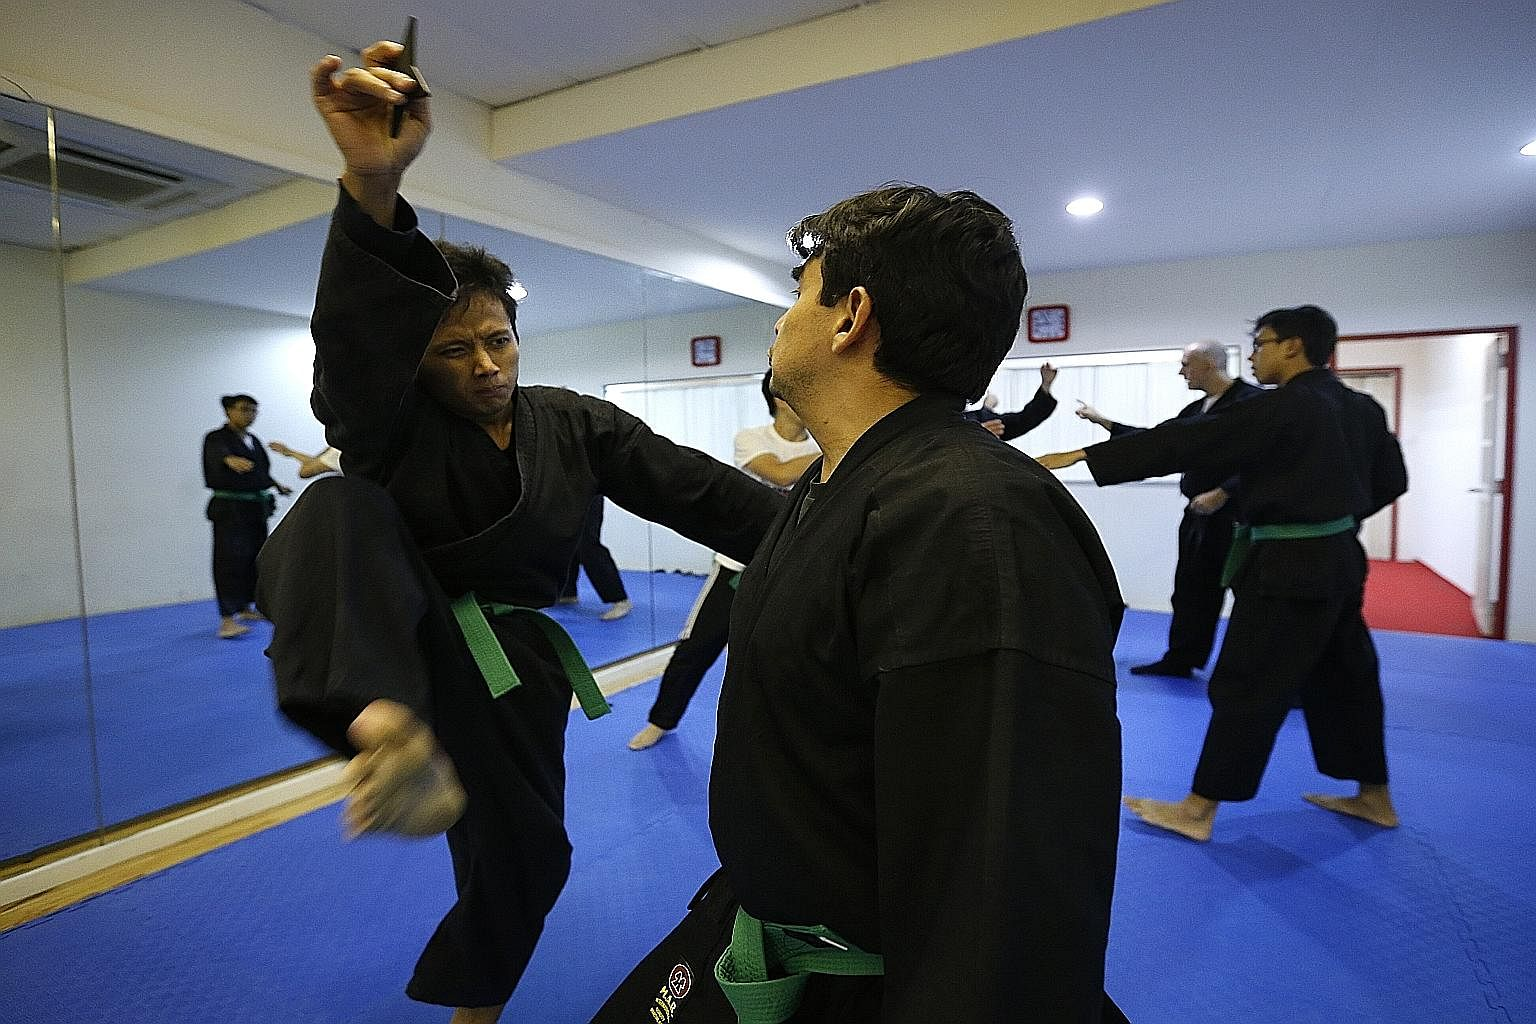 (Above) Ninjutsu student Lal Rin Lian uses a shuriken to distract his opponent - a common tactic that seeks to buy a practitioner sufficient time to take out his attacker - as he delivers a surprise kick during training. Besides striking, grappling,